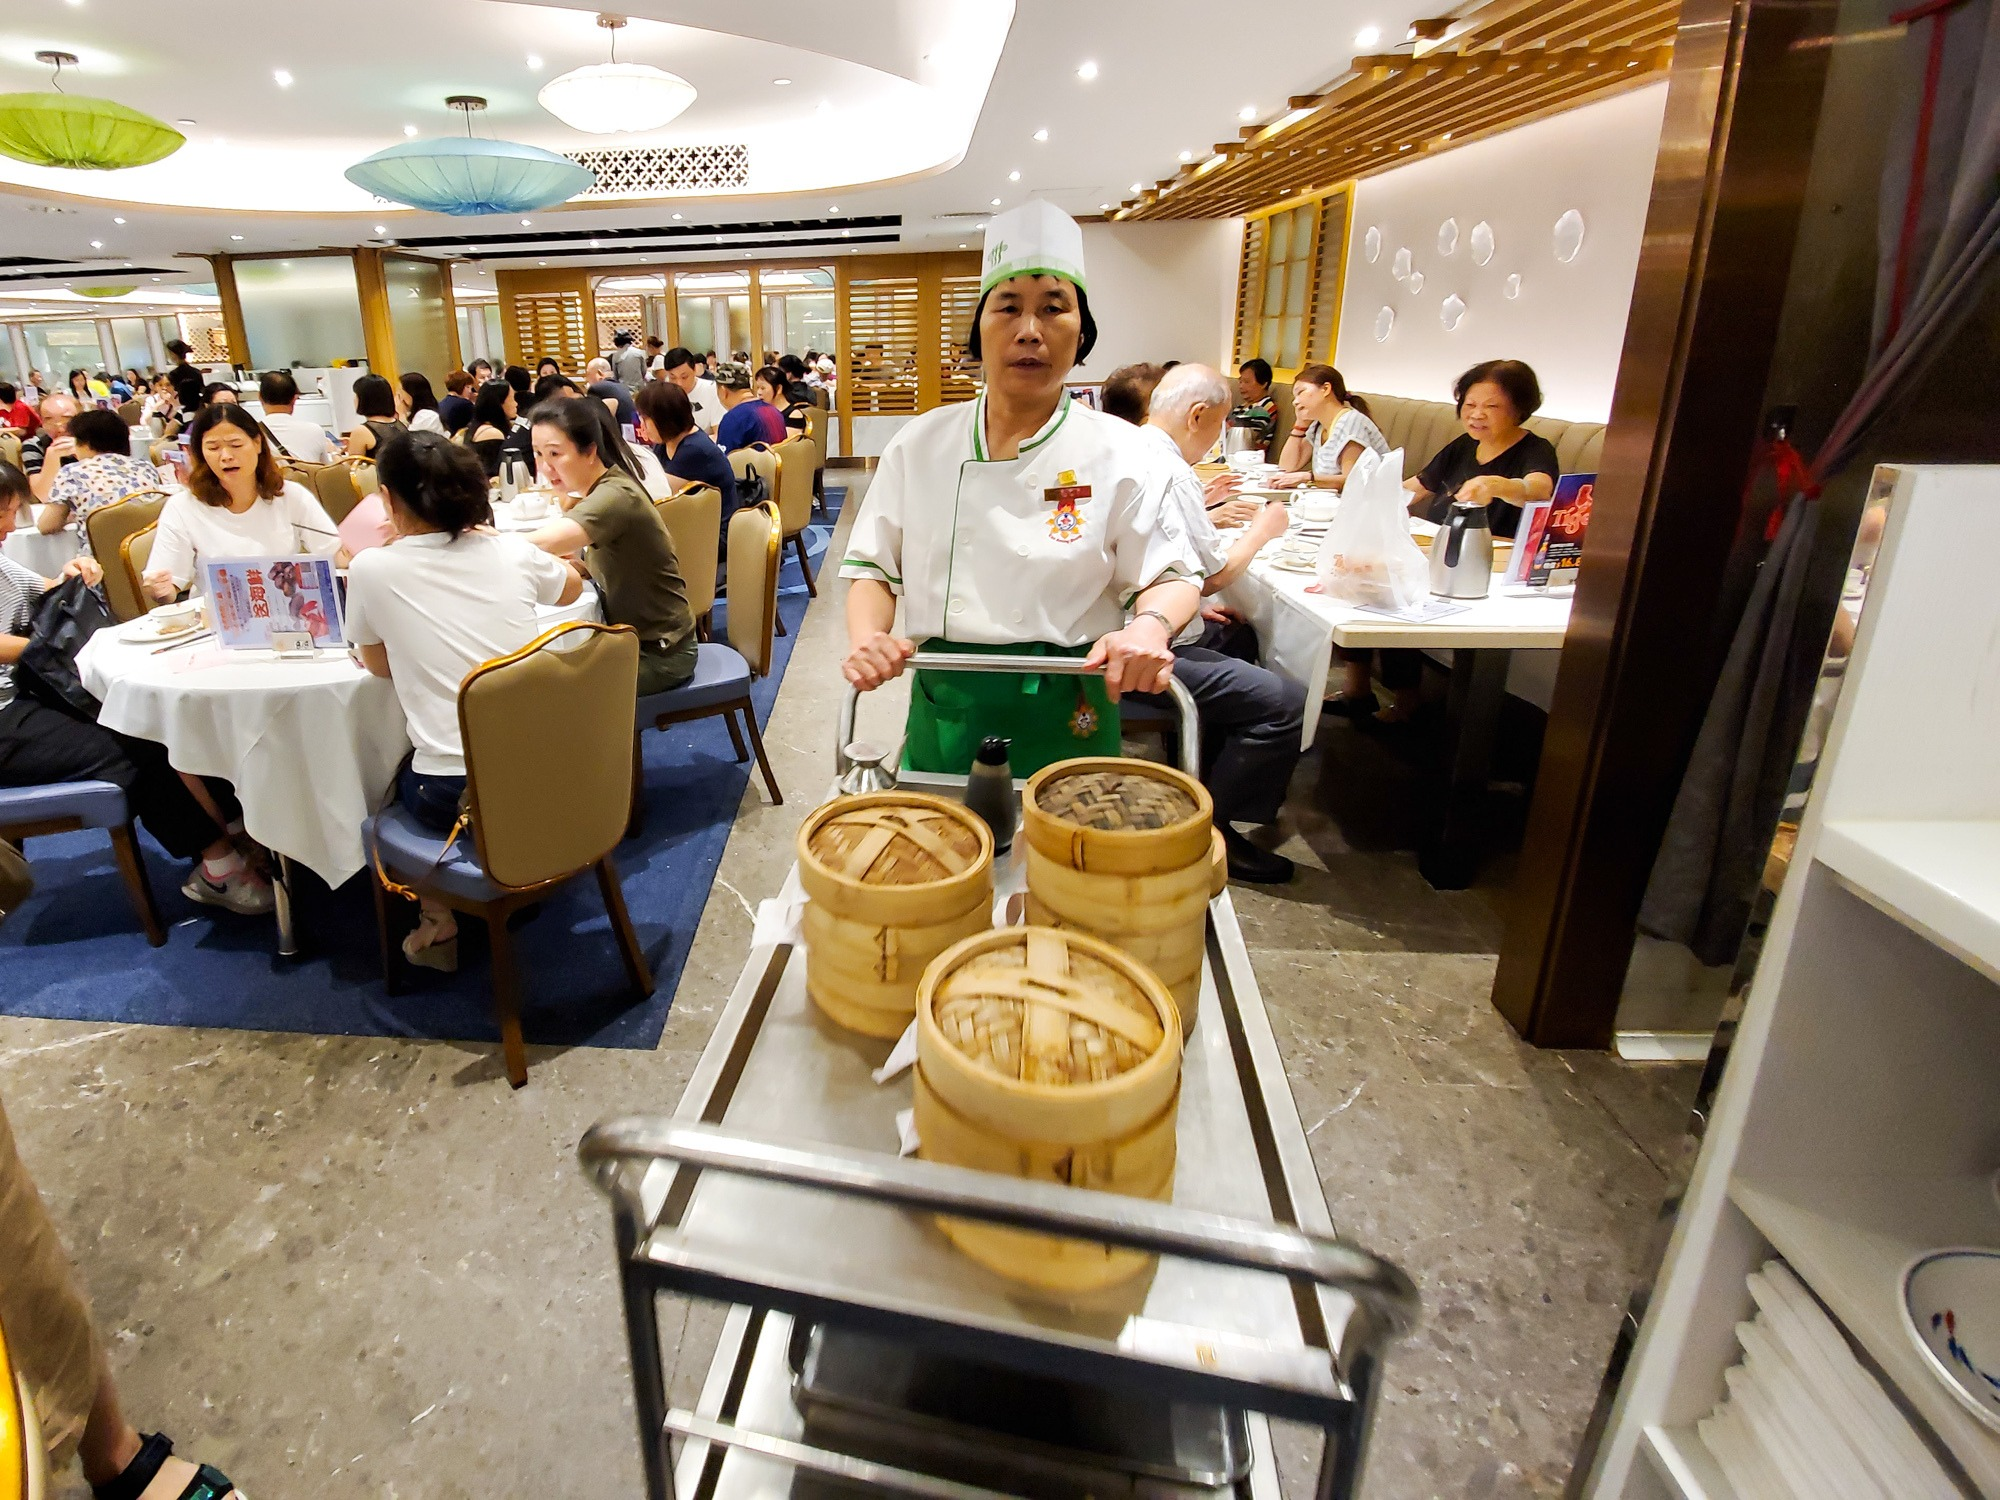 The dim sum cart is being pushed by a local server at a dim sum restaurant in Hong Kong